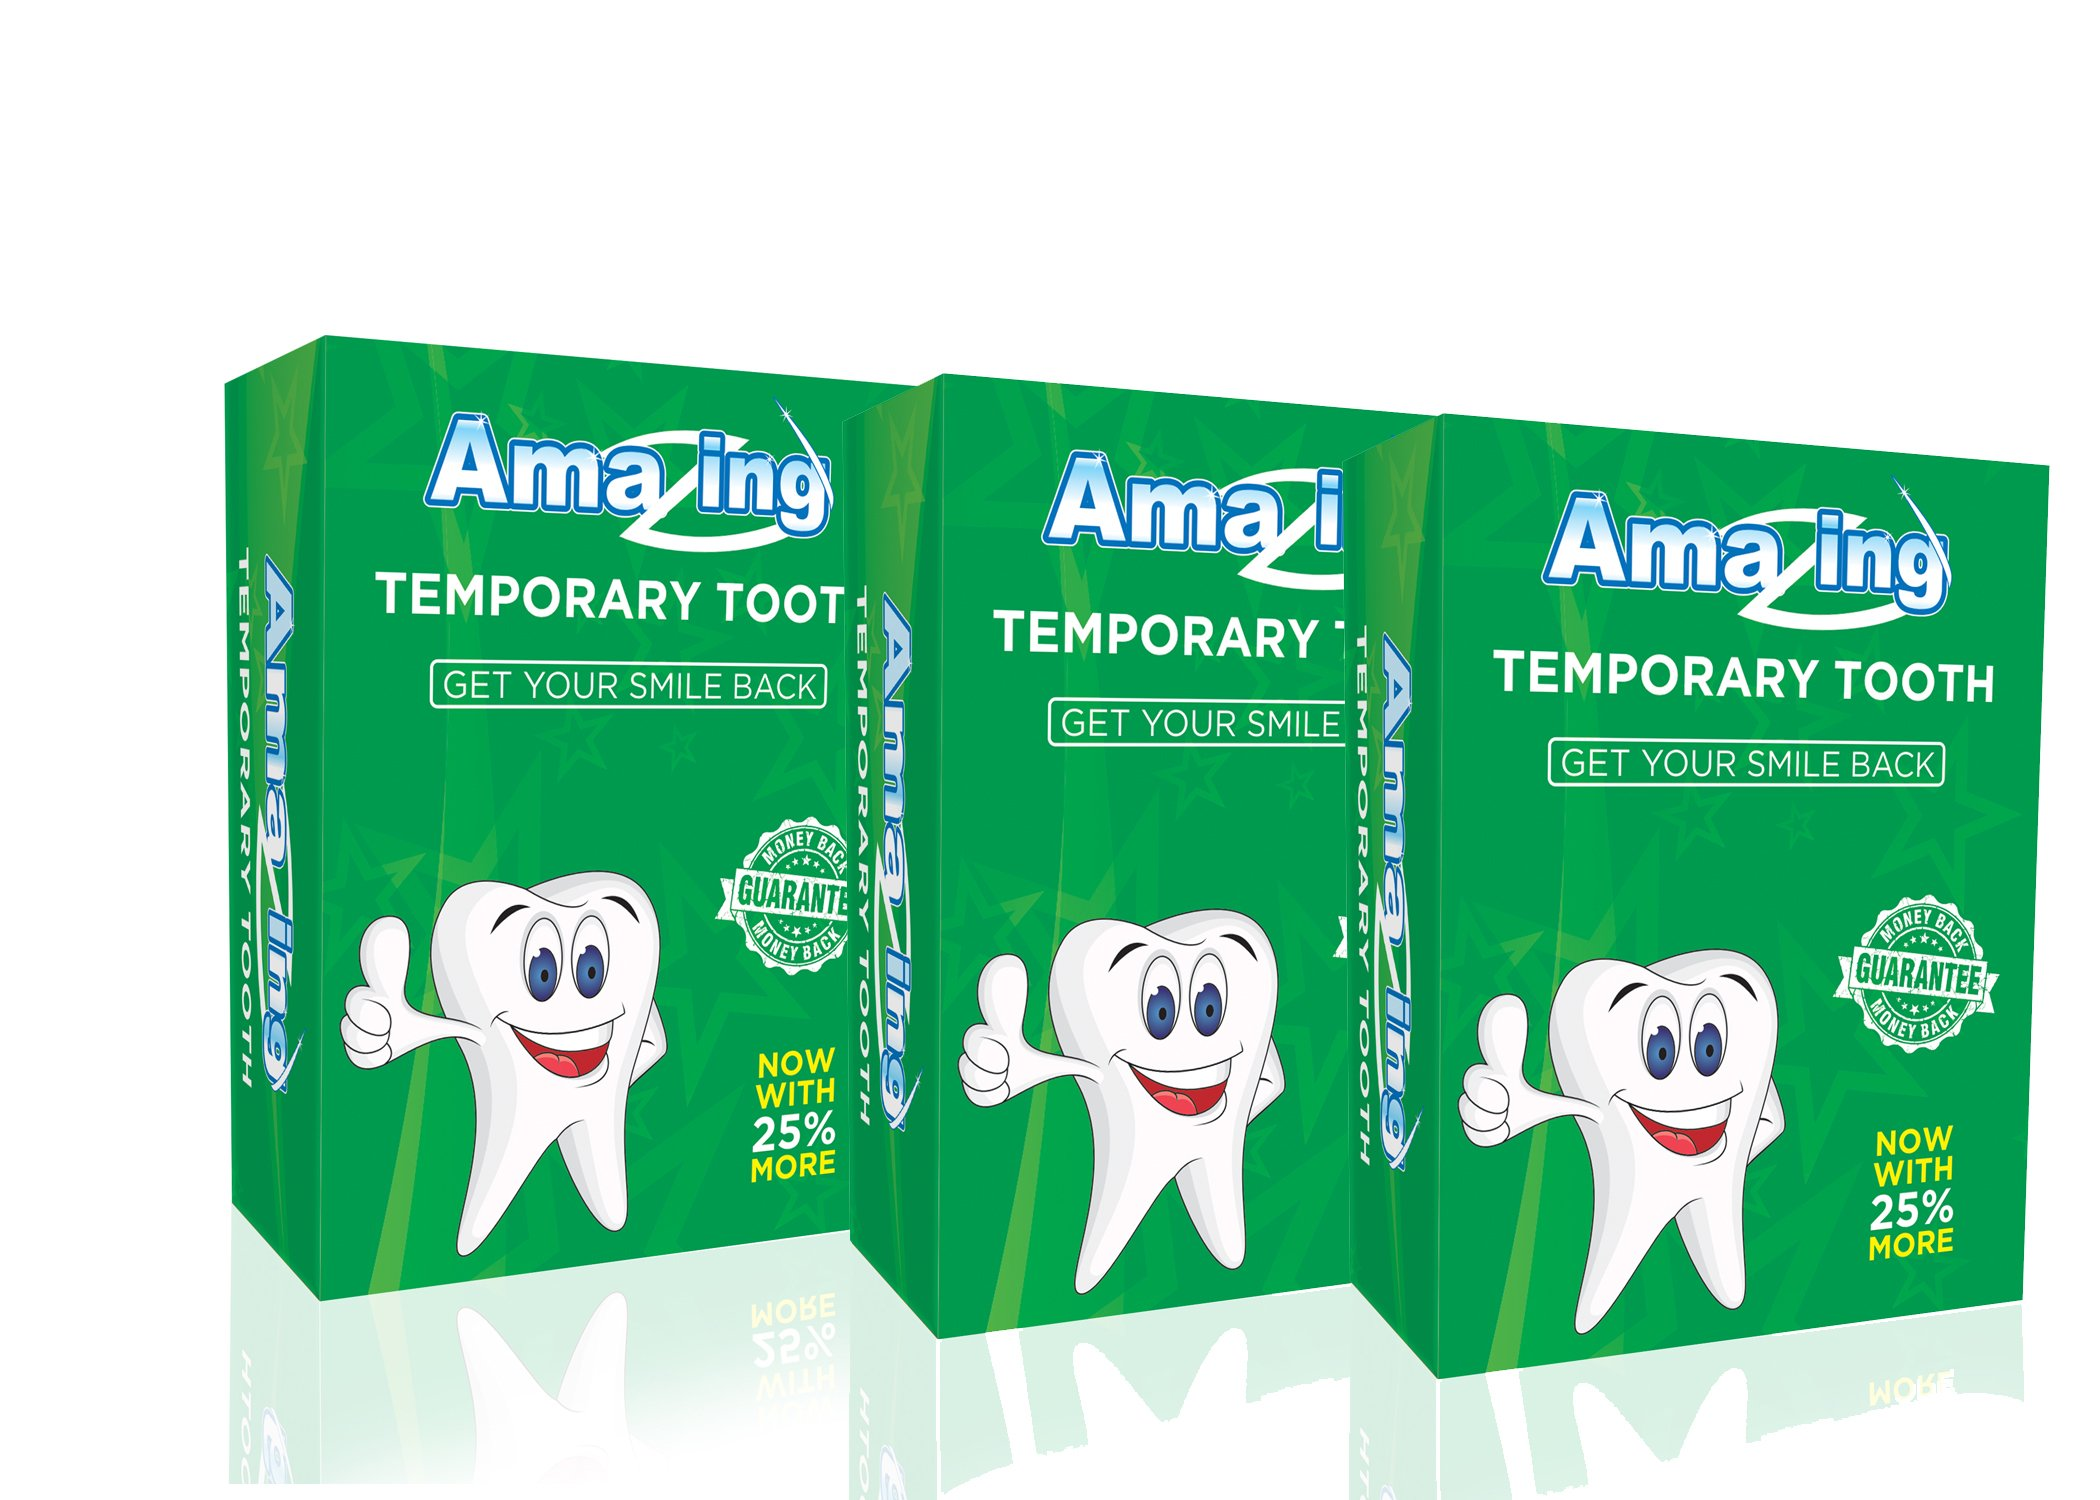 Amazing Temporary Missing Tooth Kit 3 Pack Replacement Temp Dental 25% more than others